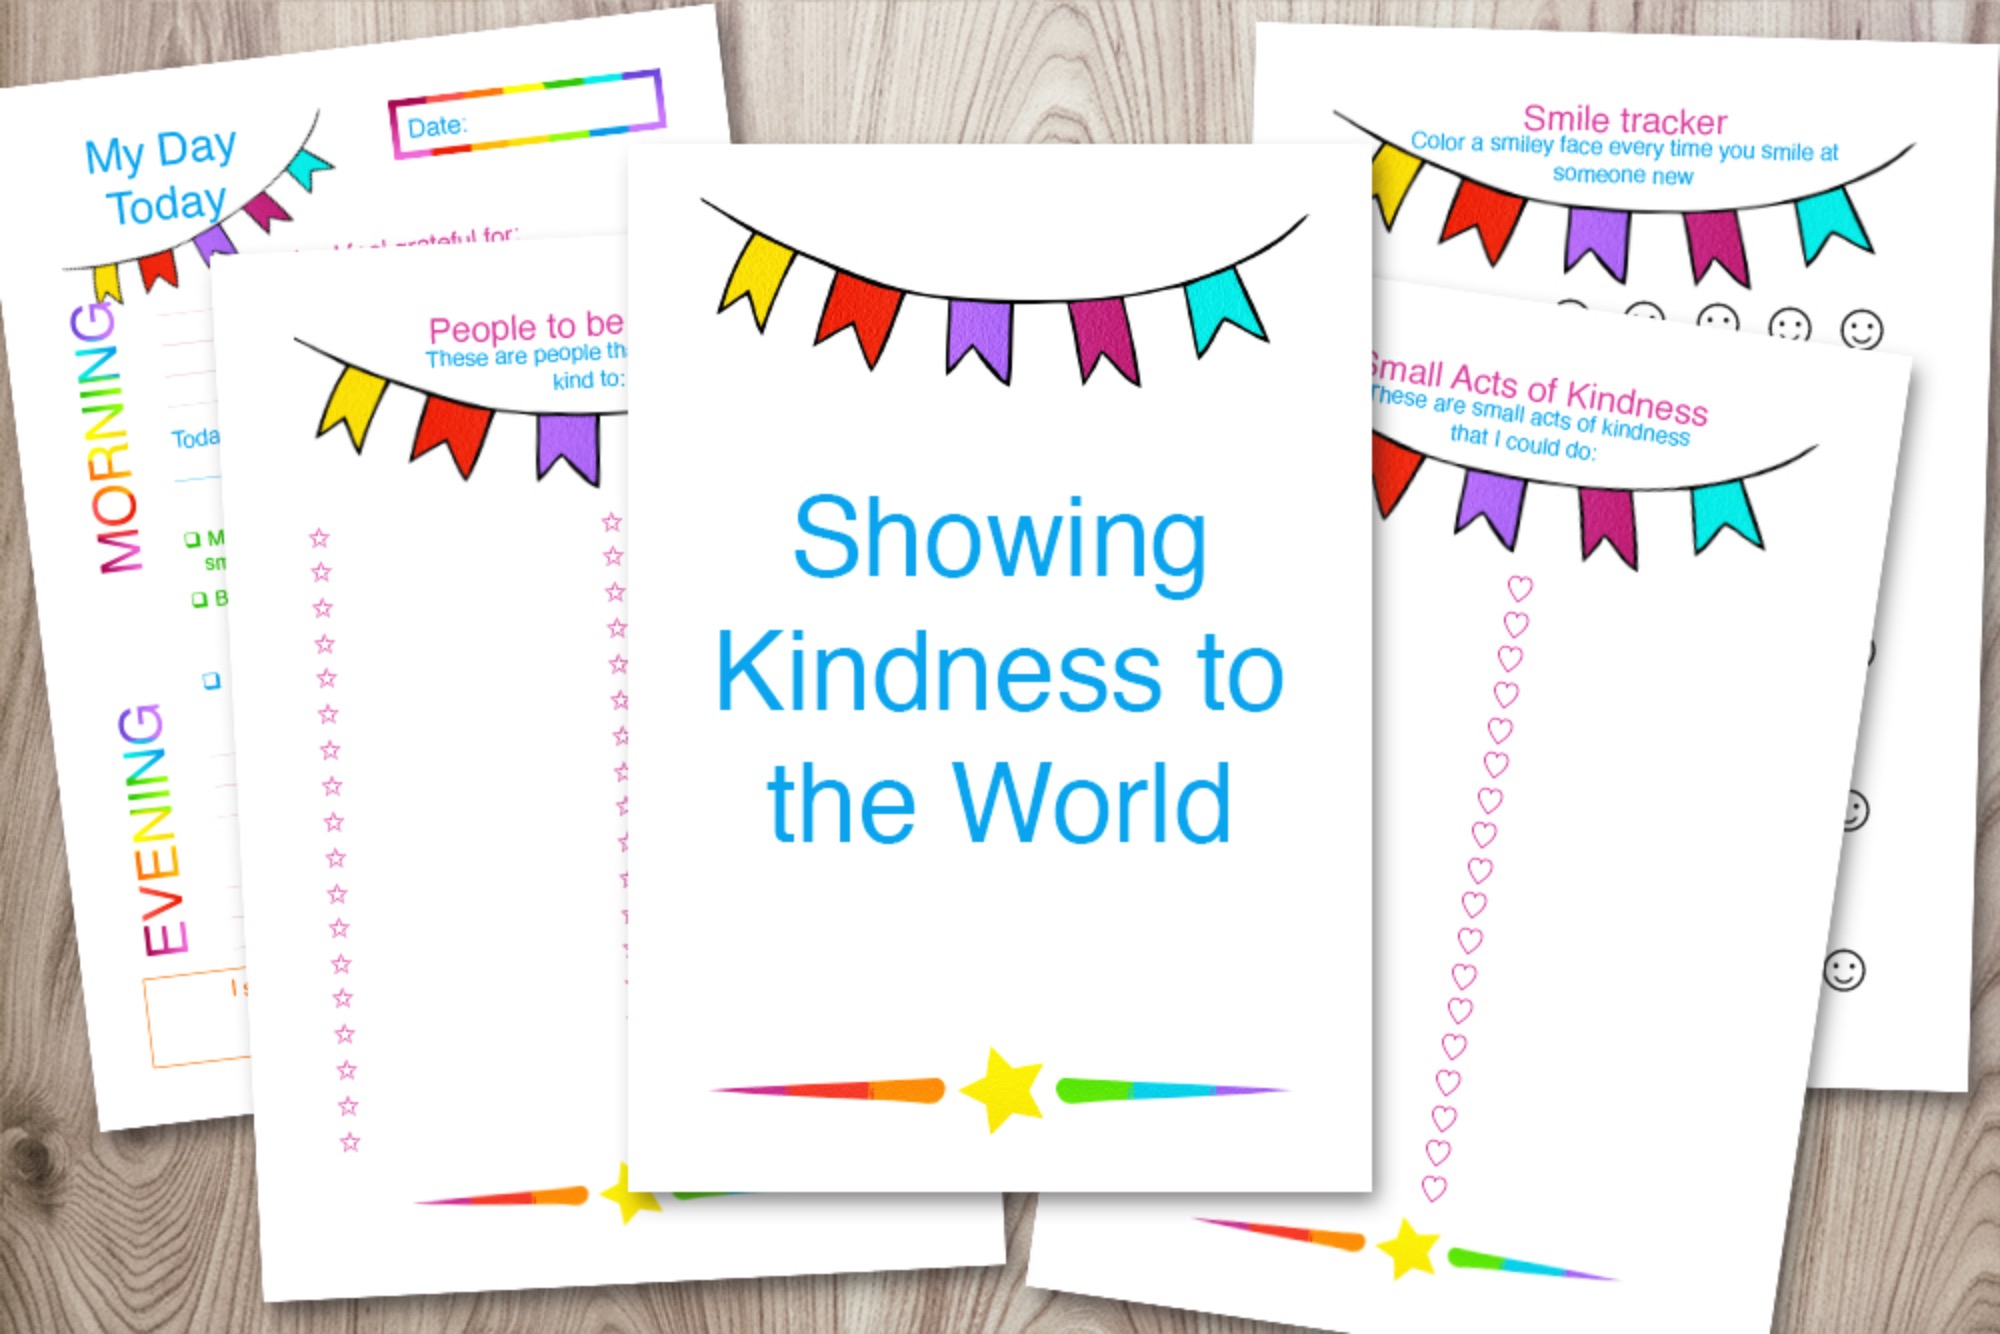 Acts of Kindness Journal & Planner